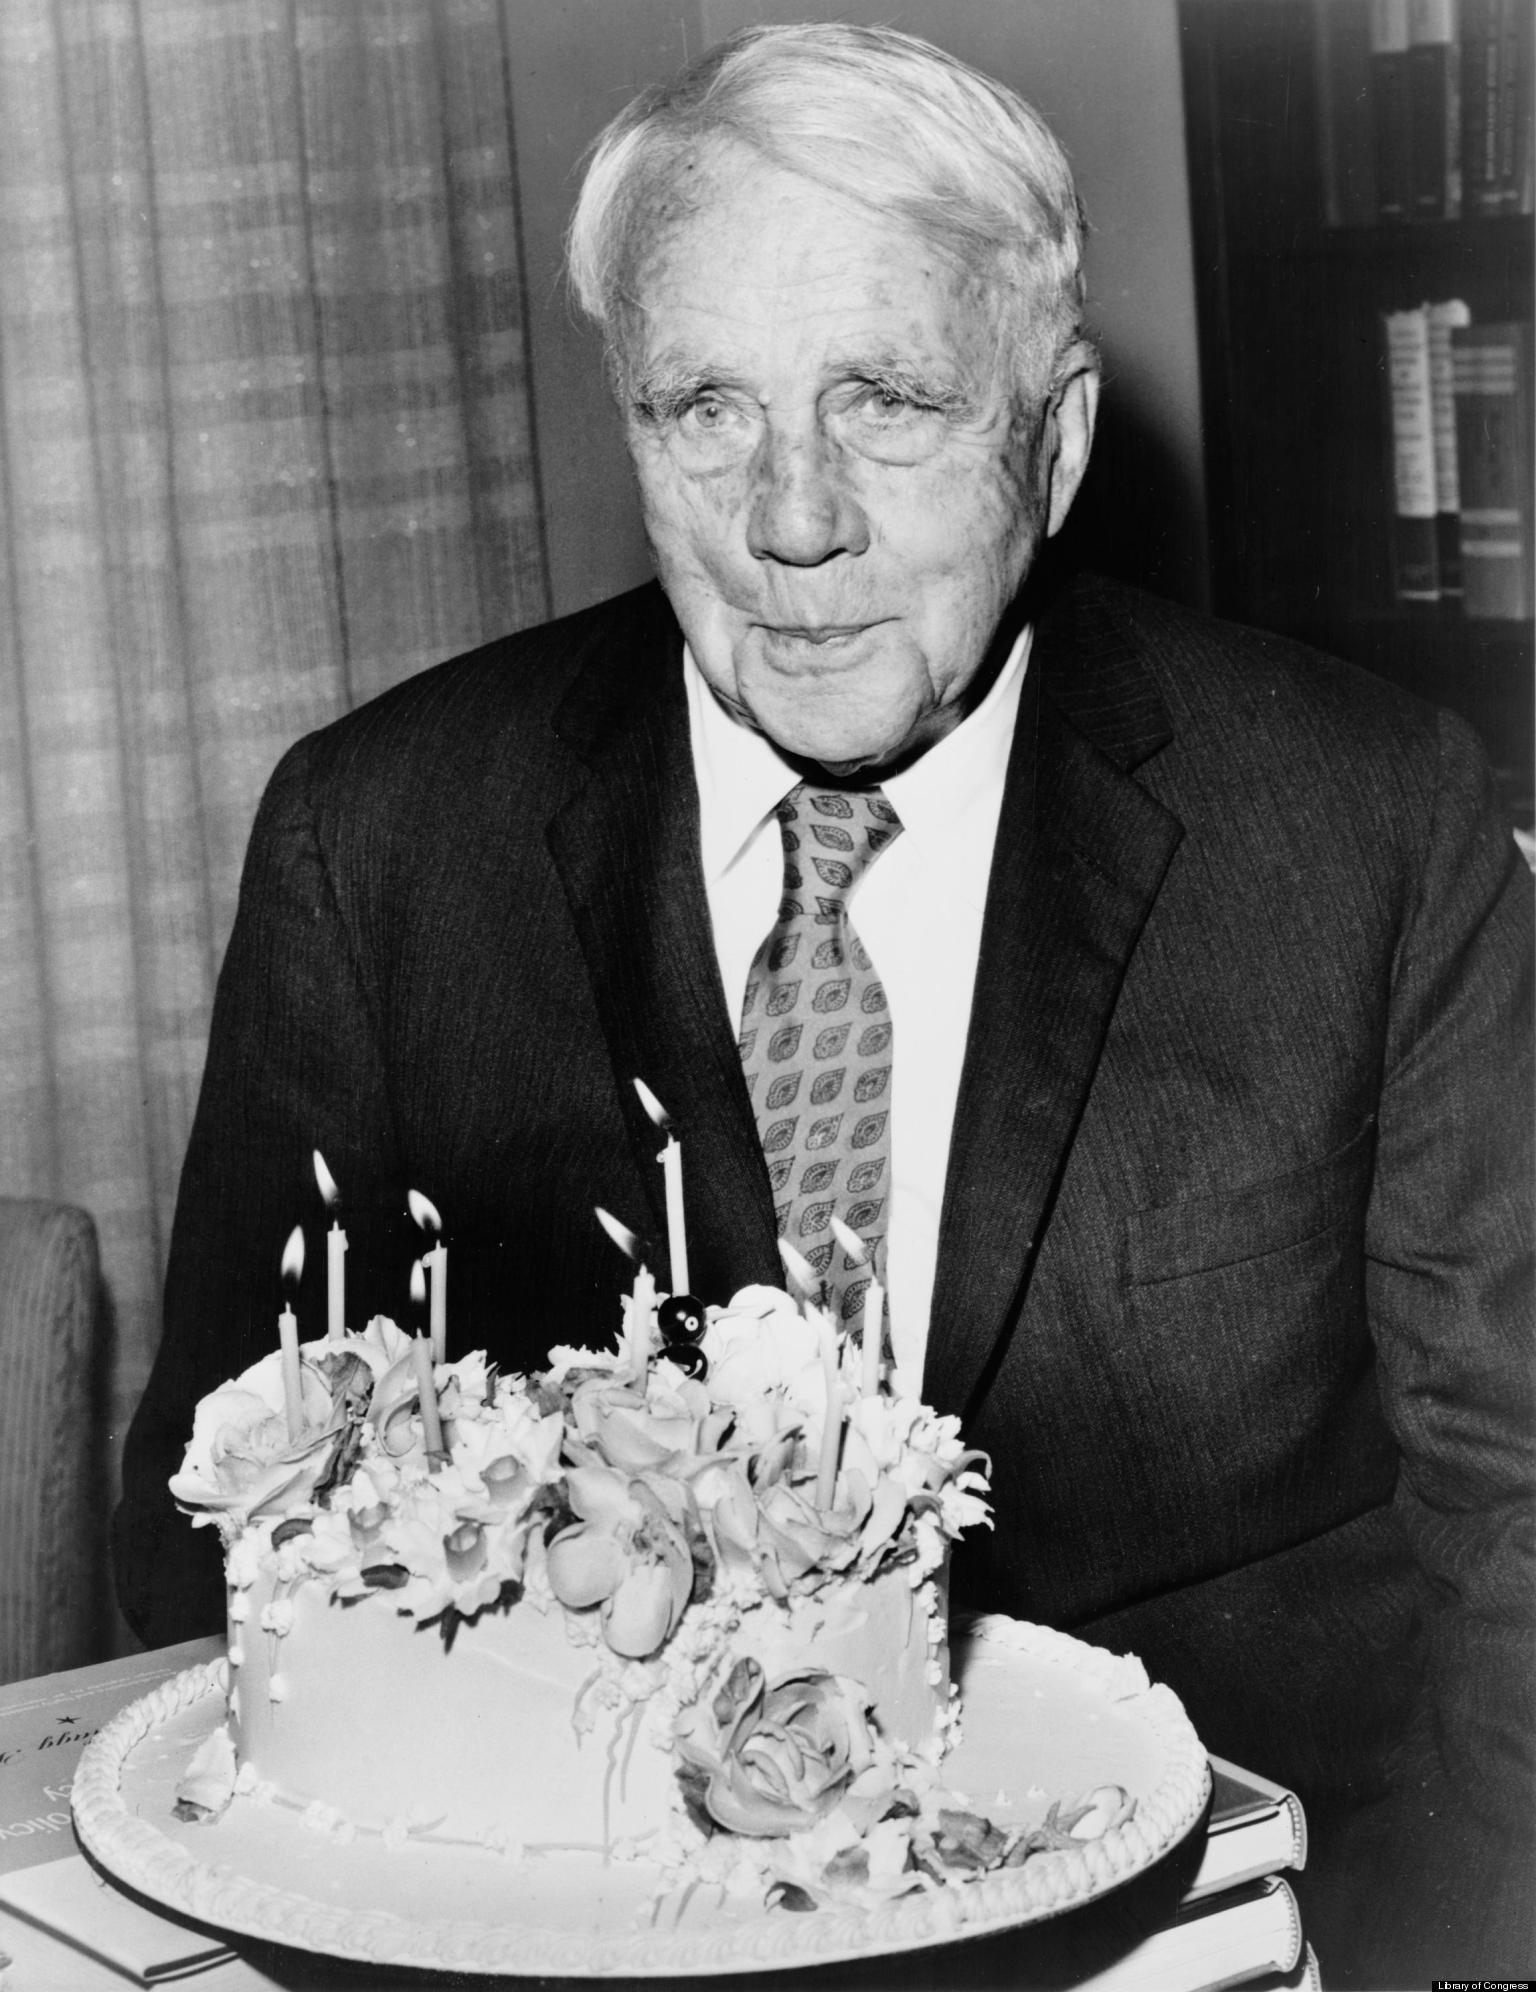 Robert Frost Birthday: 16 Inspiring Quotes From The Famous